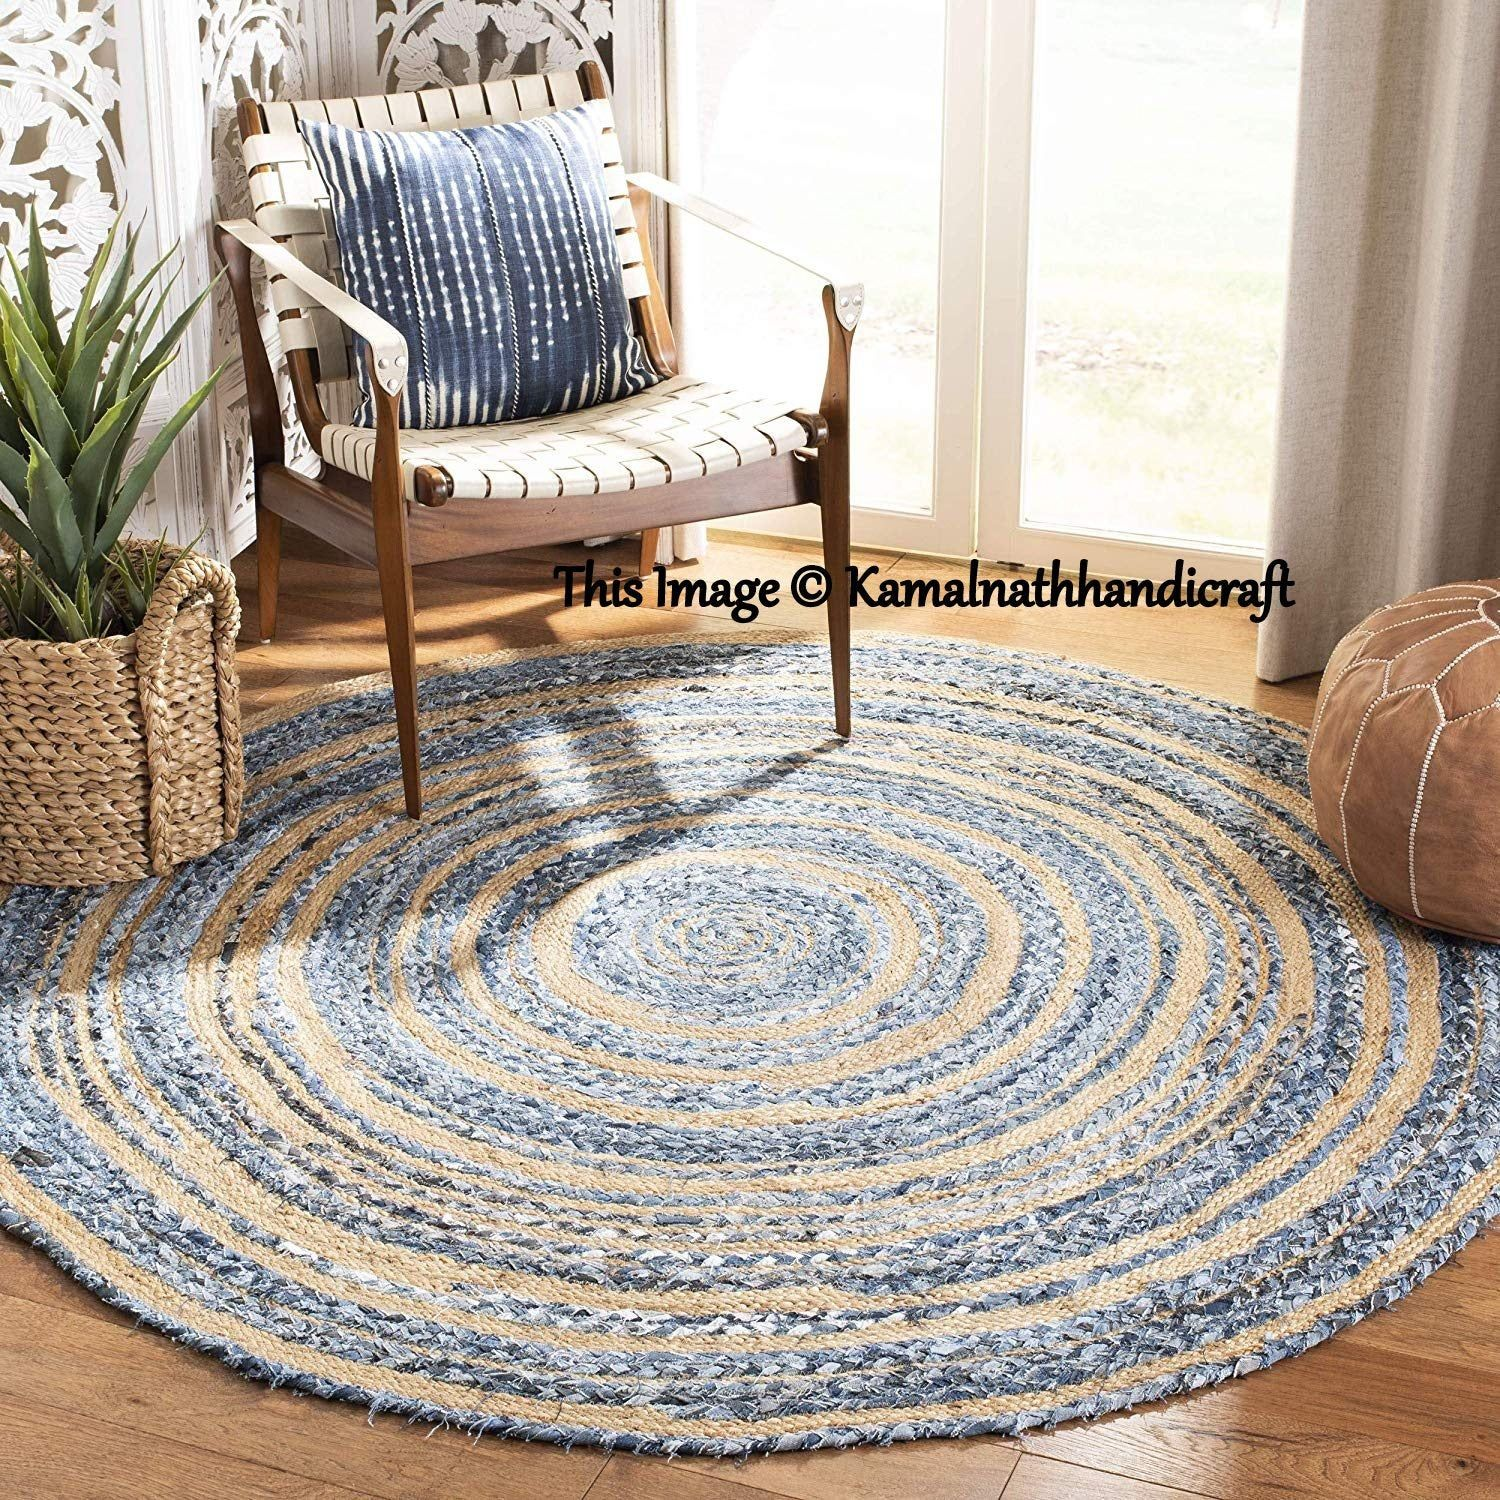 Indian Handmade Hand Braided Bohemian Colorful Jute And Cotton Area Rug Multi Colors Round Home Decor Rugs Cotton Area Rugs 8 Feet Diameter In 2020 Braided Area Rugs Natural Jute Rug Floor Rugs